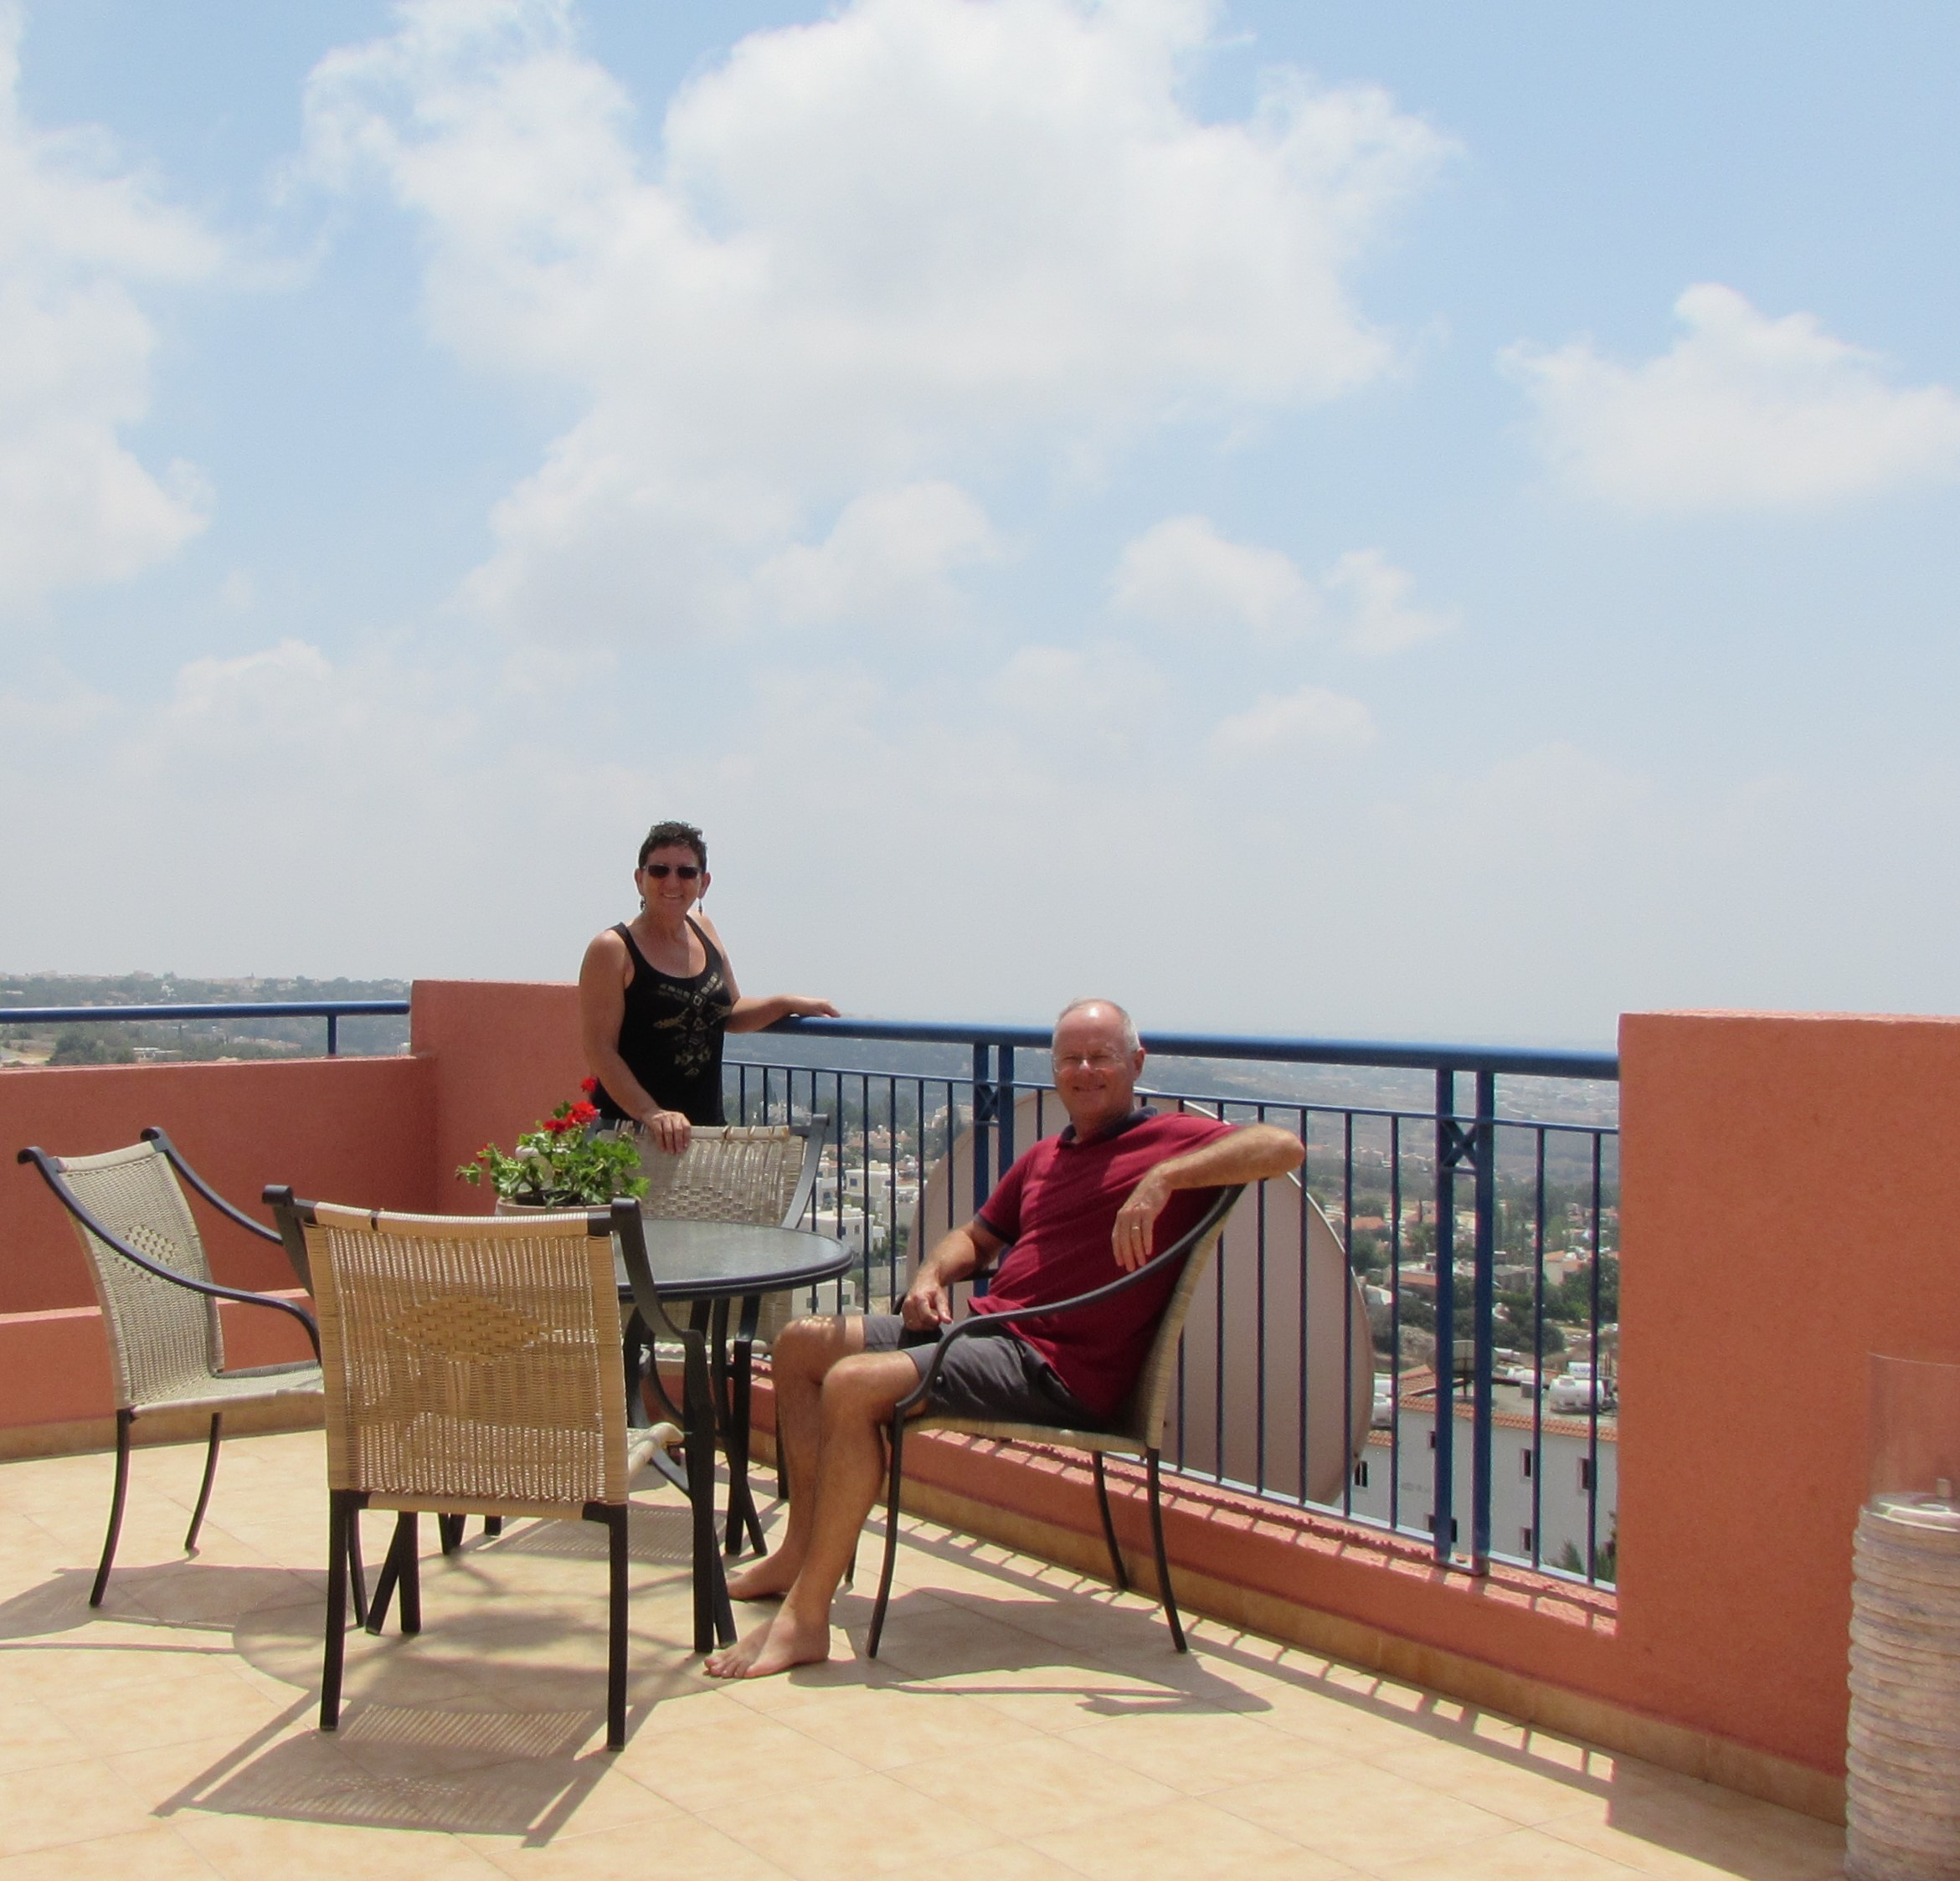 On our terrace with view across the Mediterranean Sea. The distance to coast is 2000 meters as the crow flies.